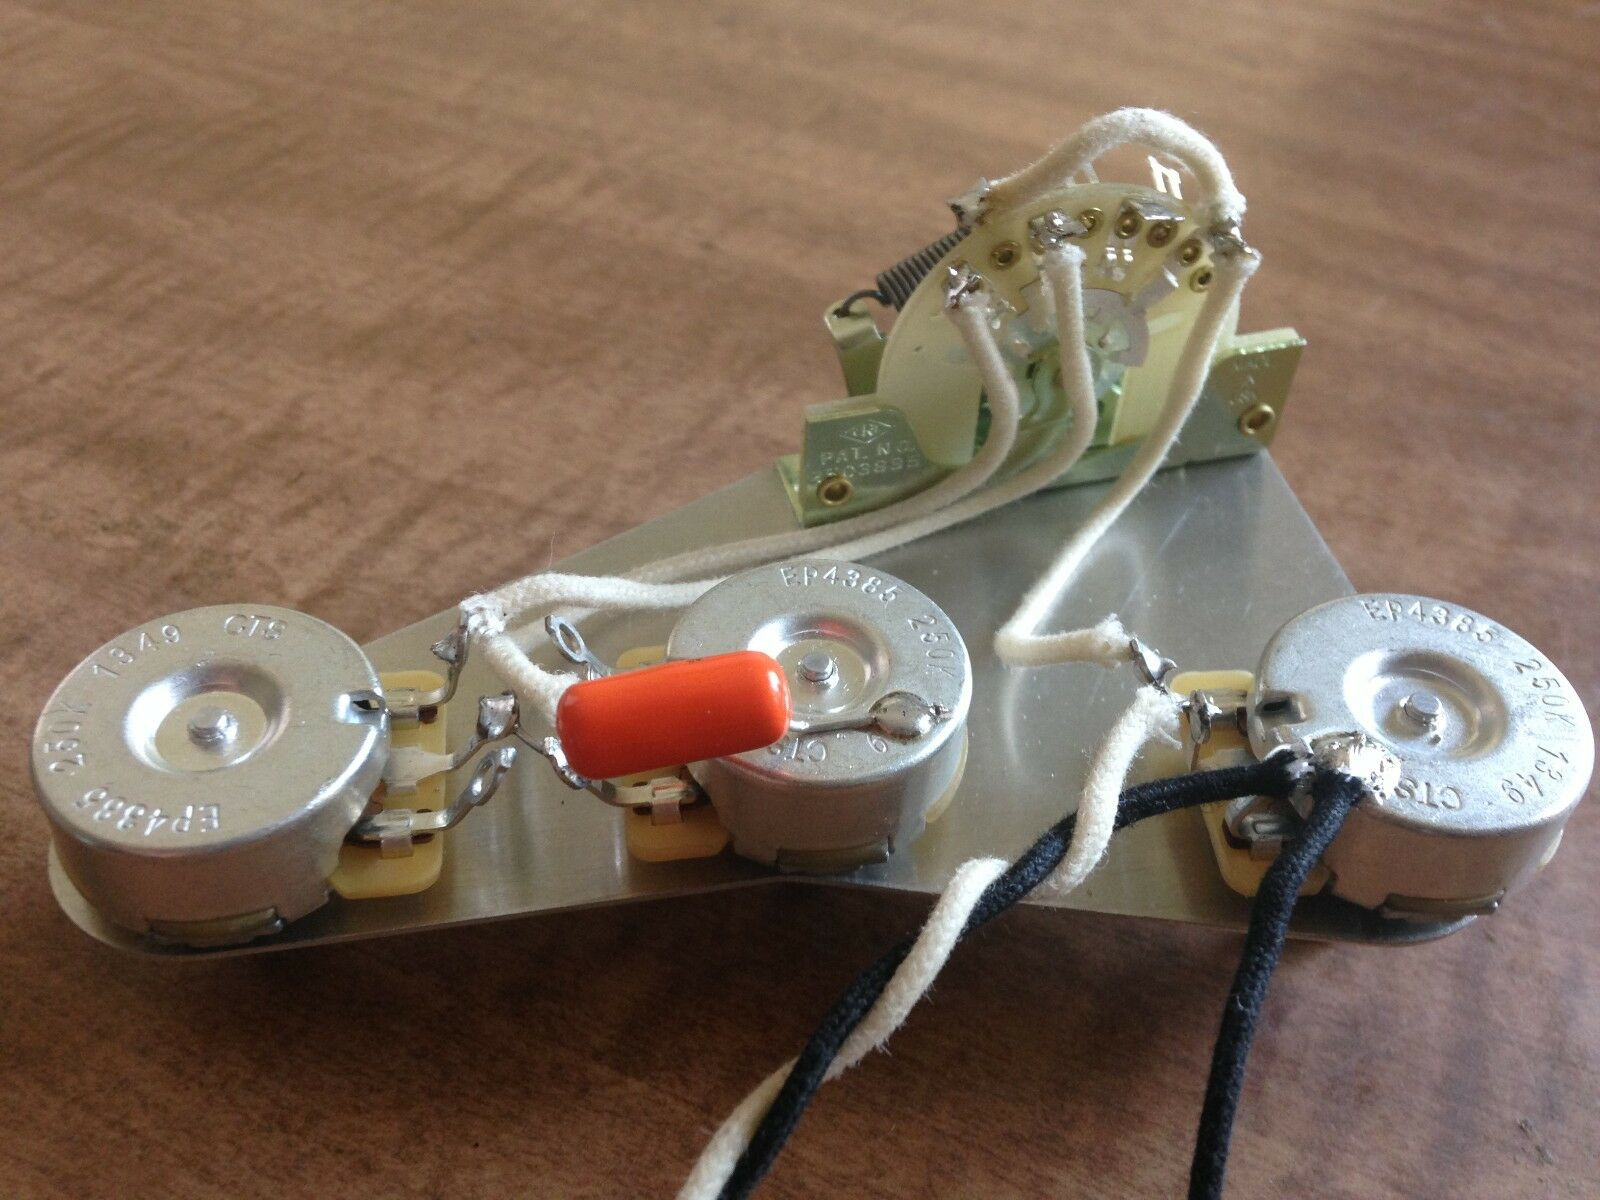 Upgrade Wiring Harness For Fender Stratocaster Quality Parts Cts Pots Crl Switch 1 Of 6free Shipping